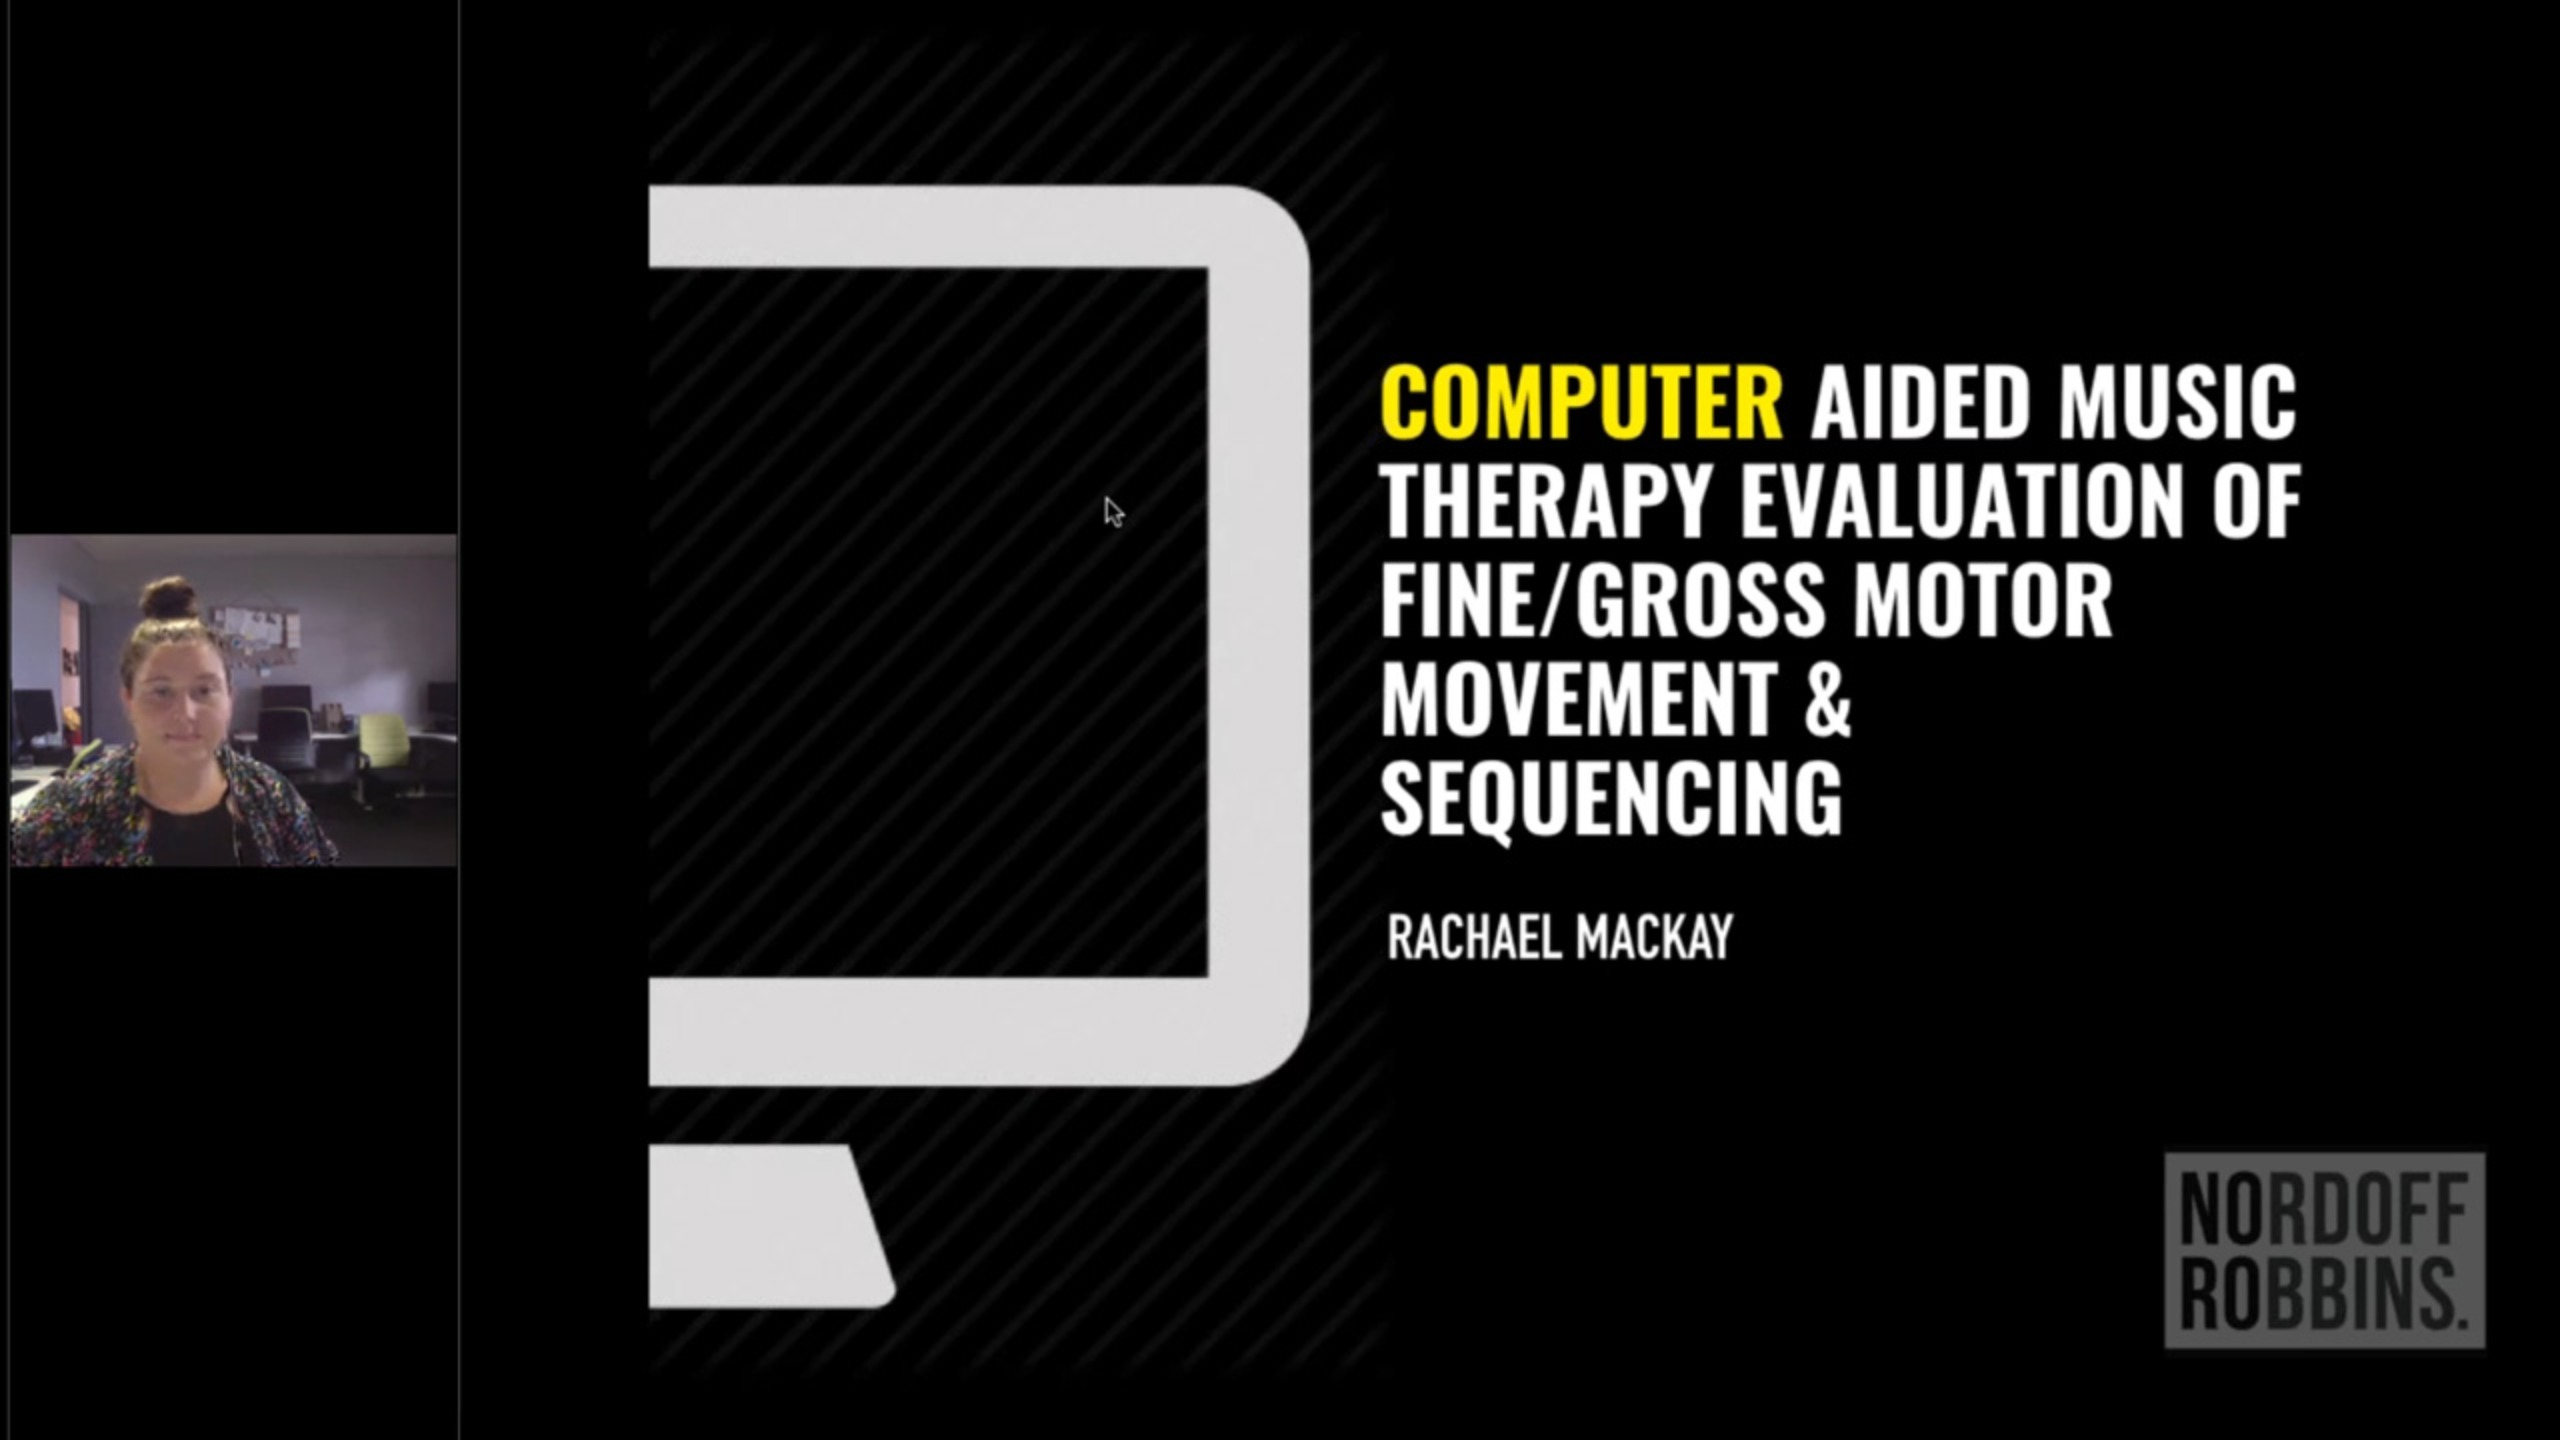 Utilizing Tech. to Enhance Understanding of Music Therapy's Effect of Motor Movement & Sequencing